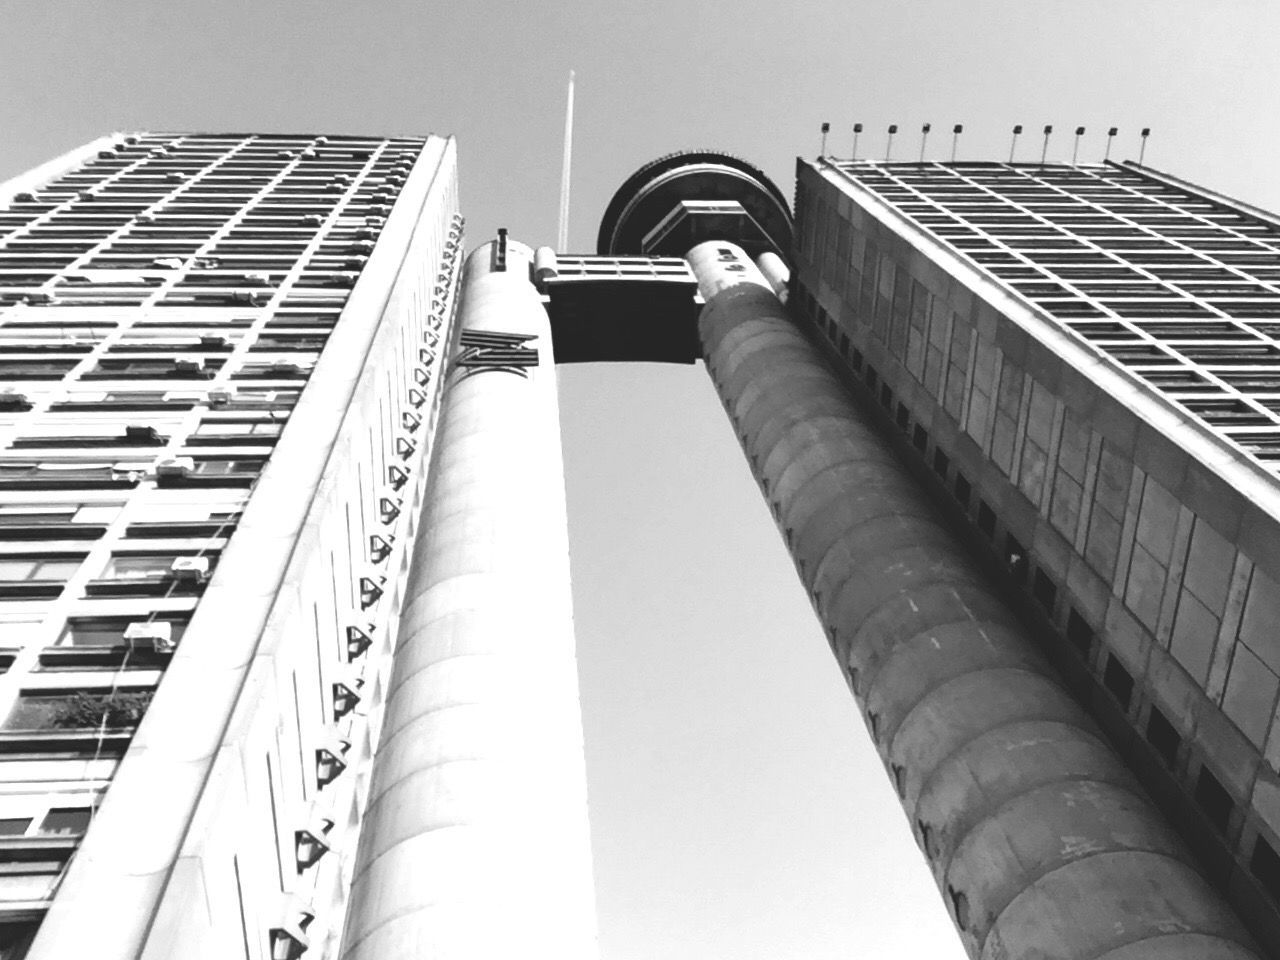 Canonphotography Blackandwhite Low Angle View Built Structure City EyeEmNewHere Adapted To The City